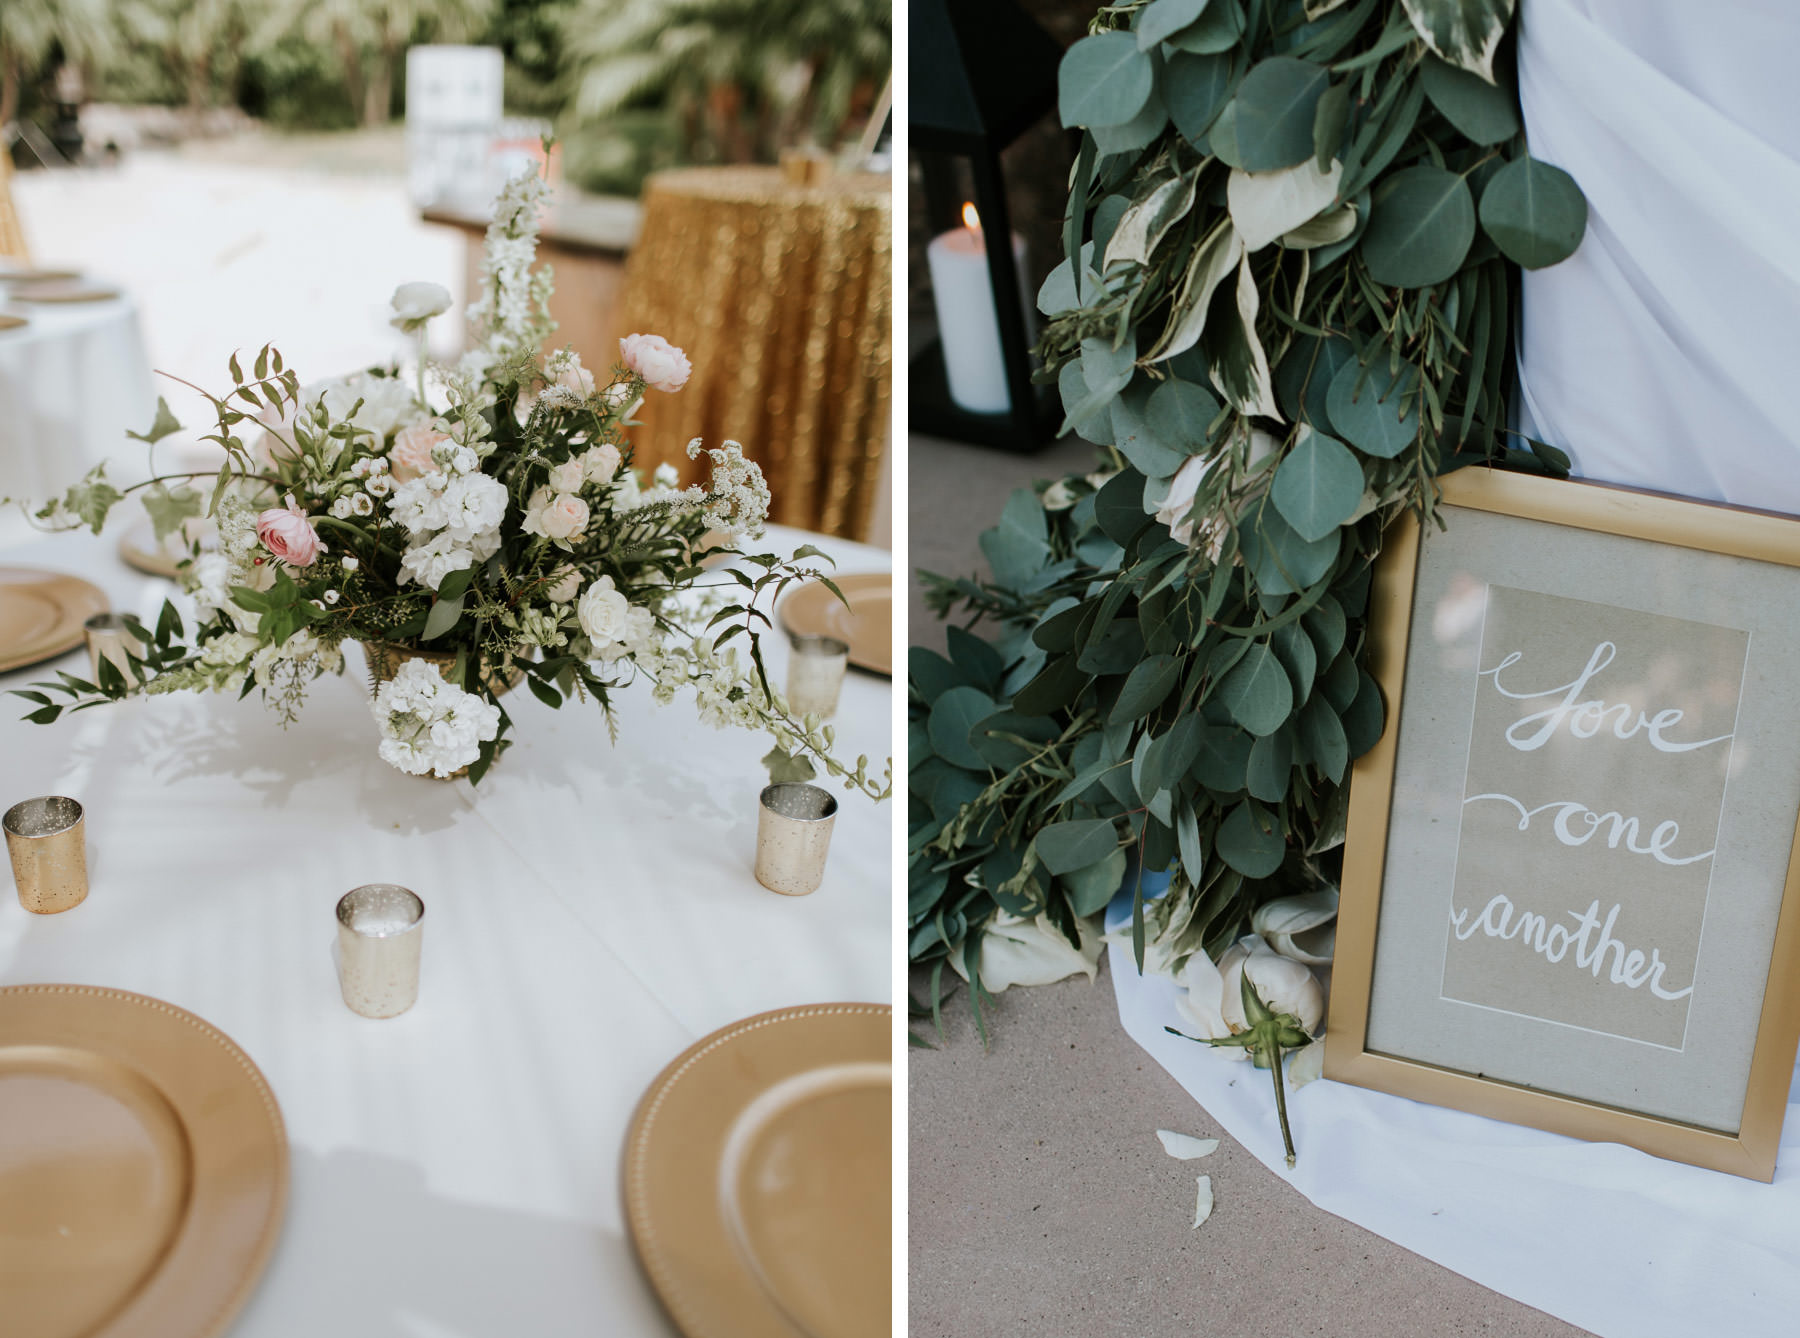 Eucalyptus table garland and gold chargers